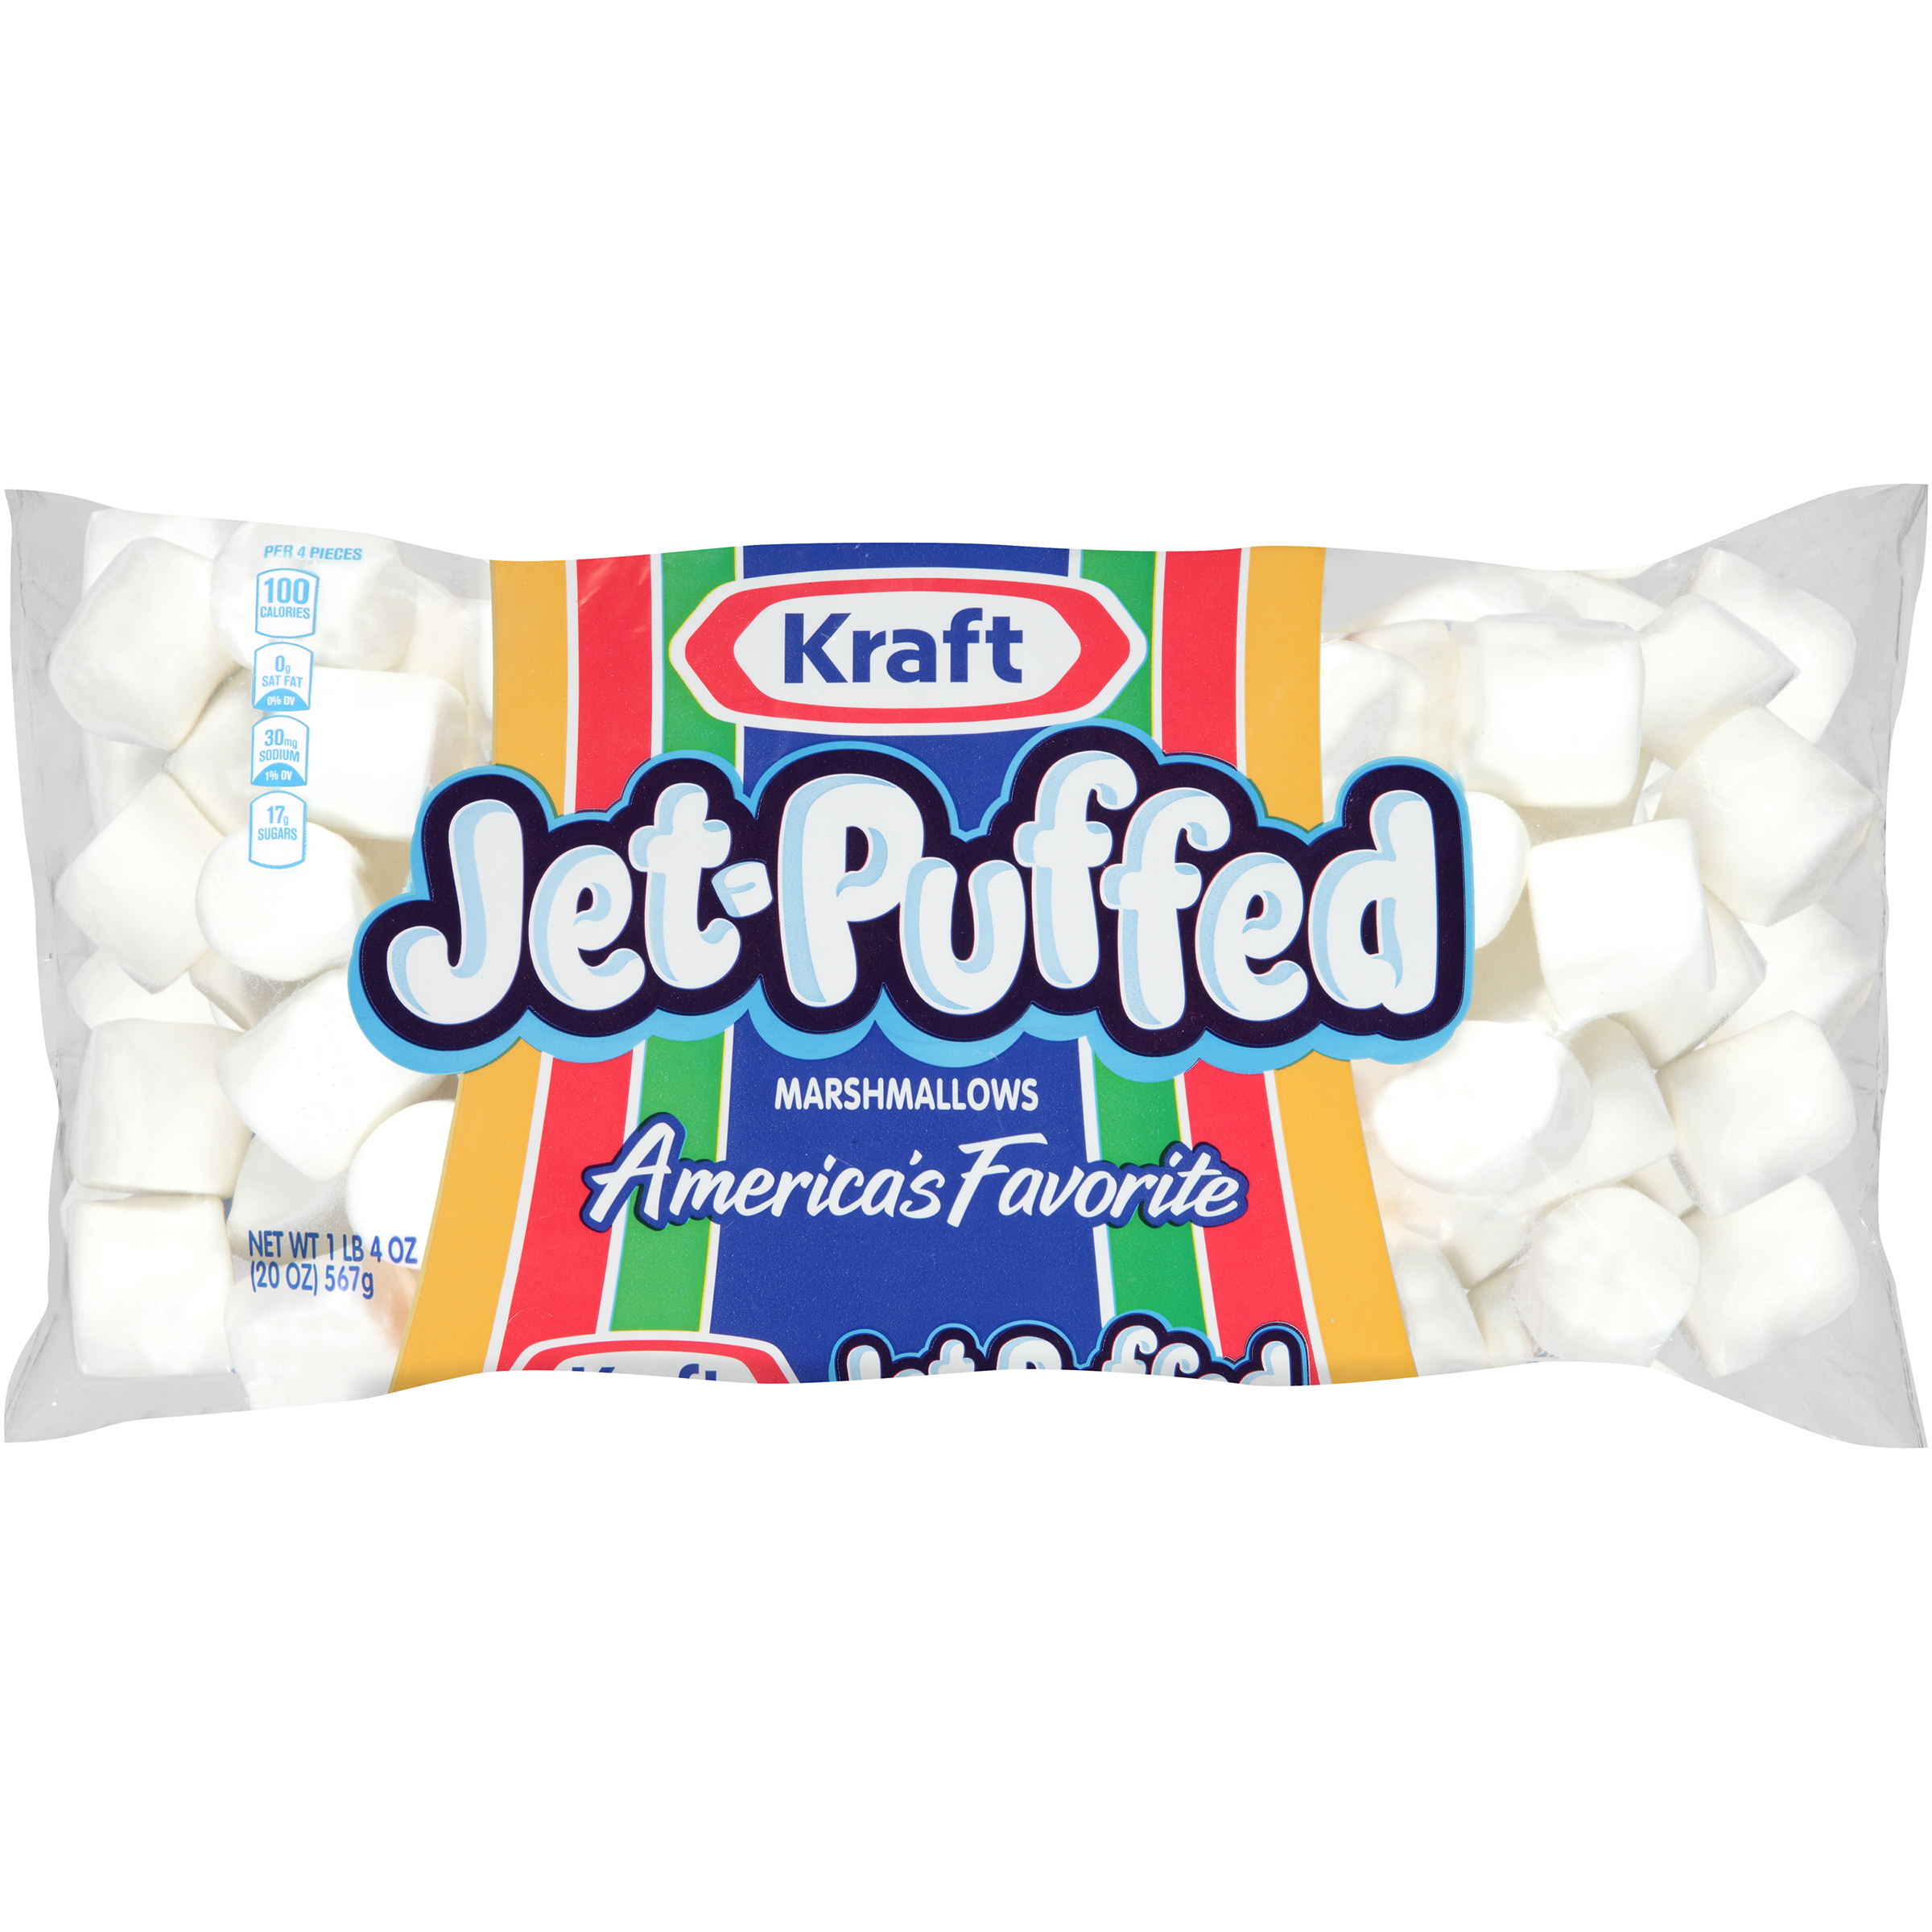 Jet-Puffed Regular Everyday Marshmallows